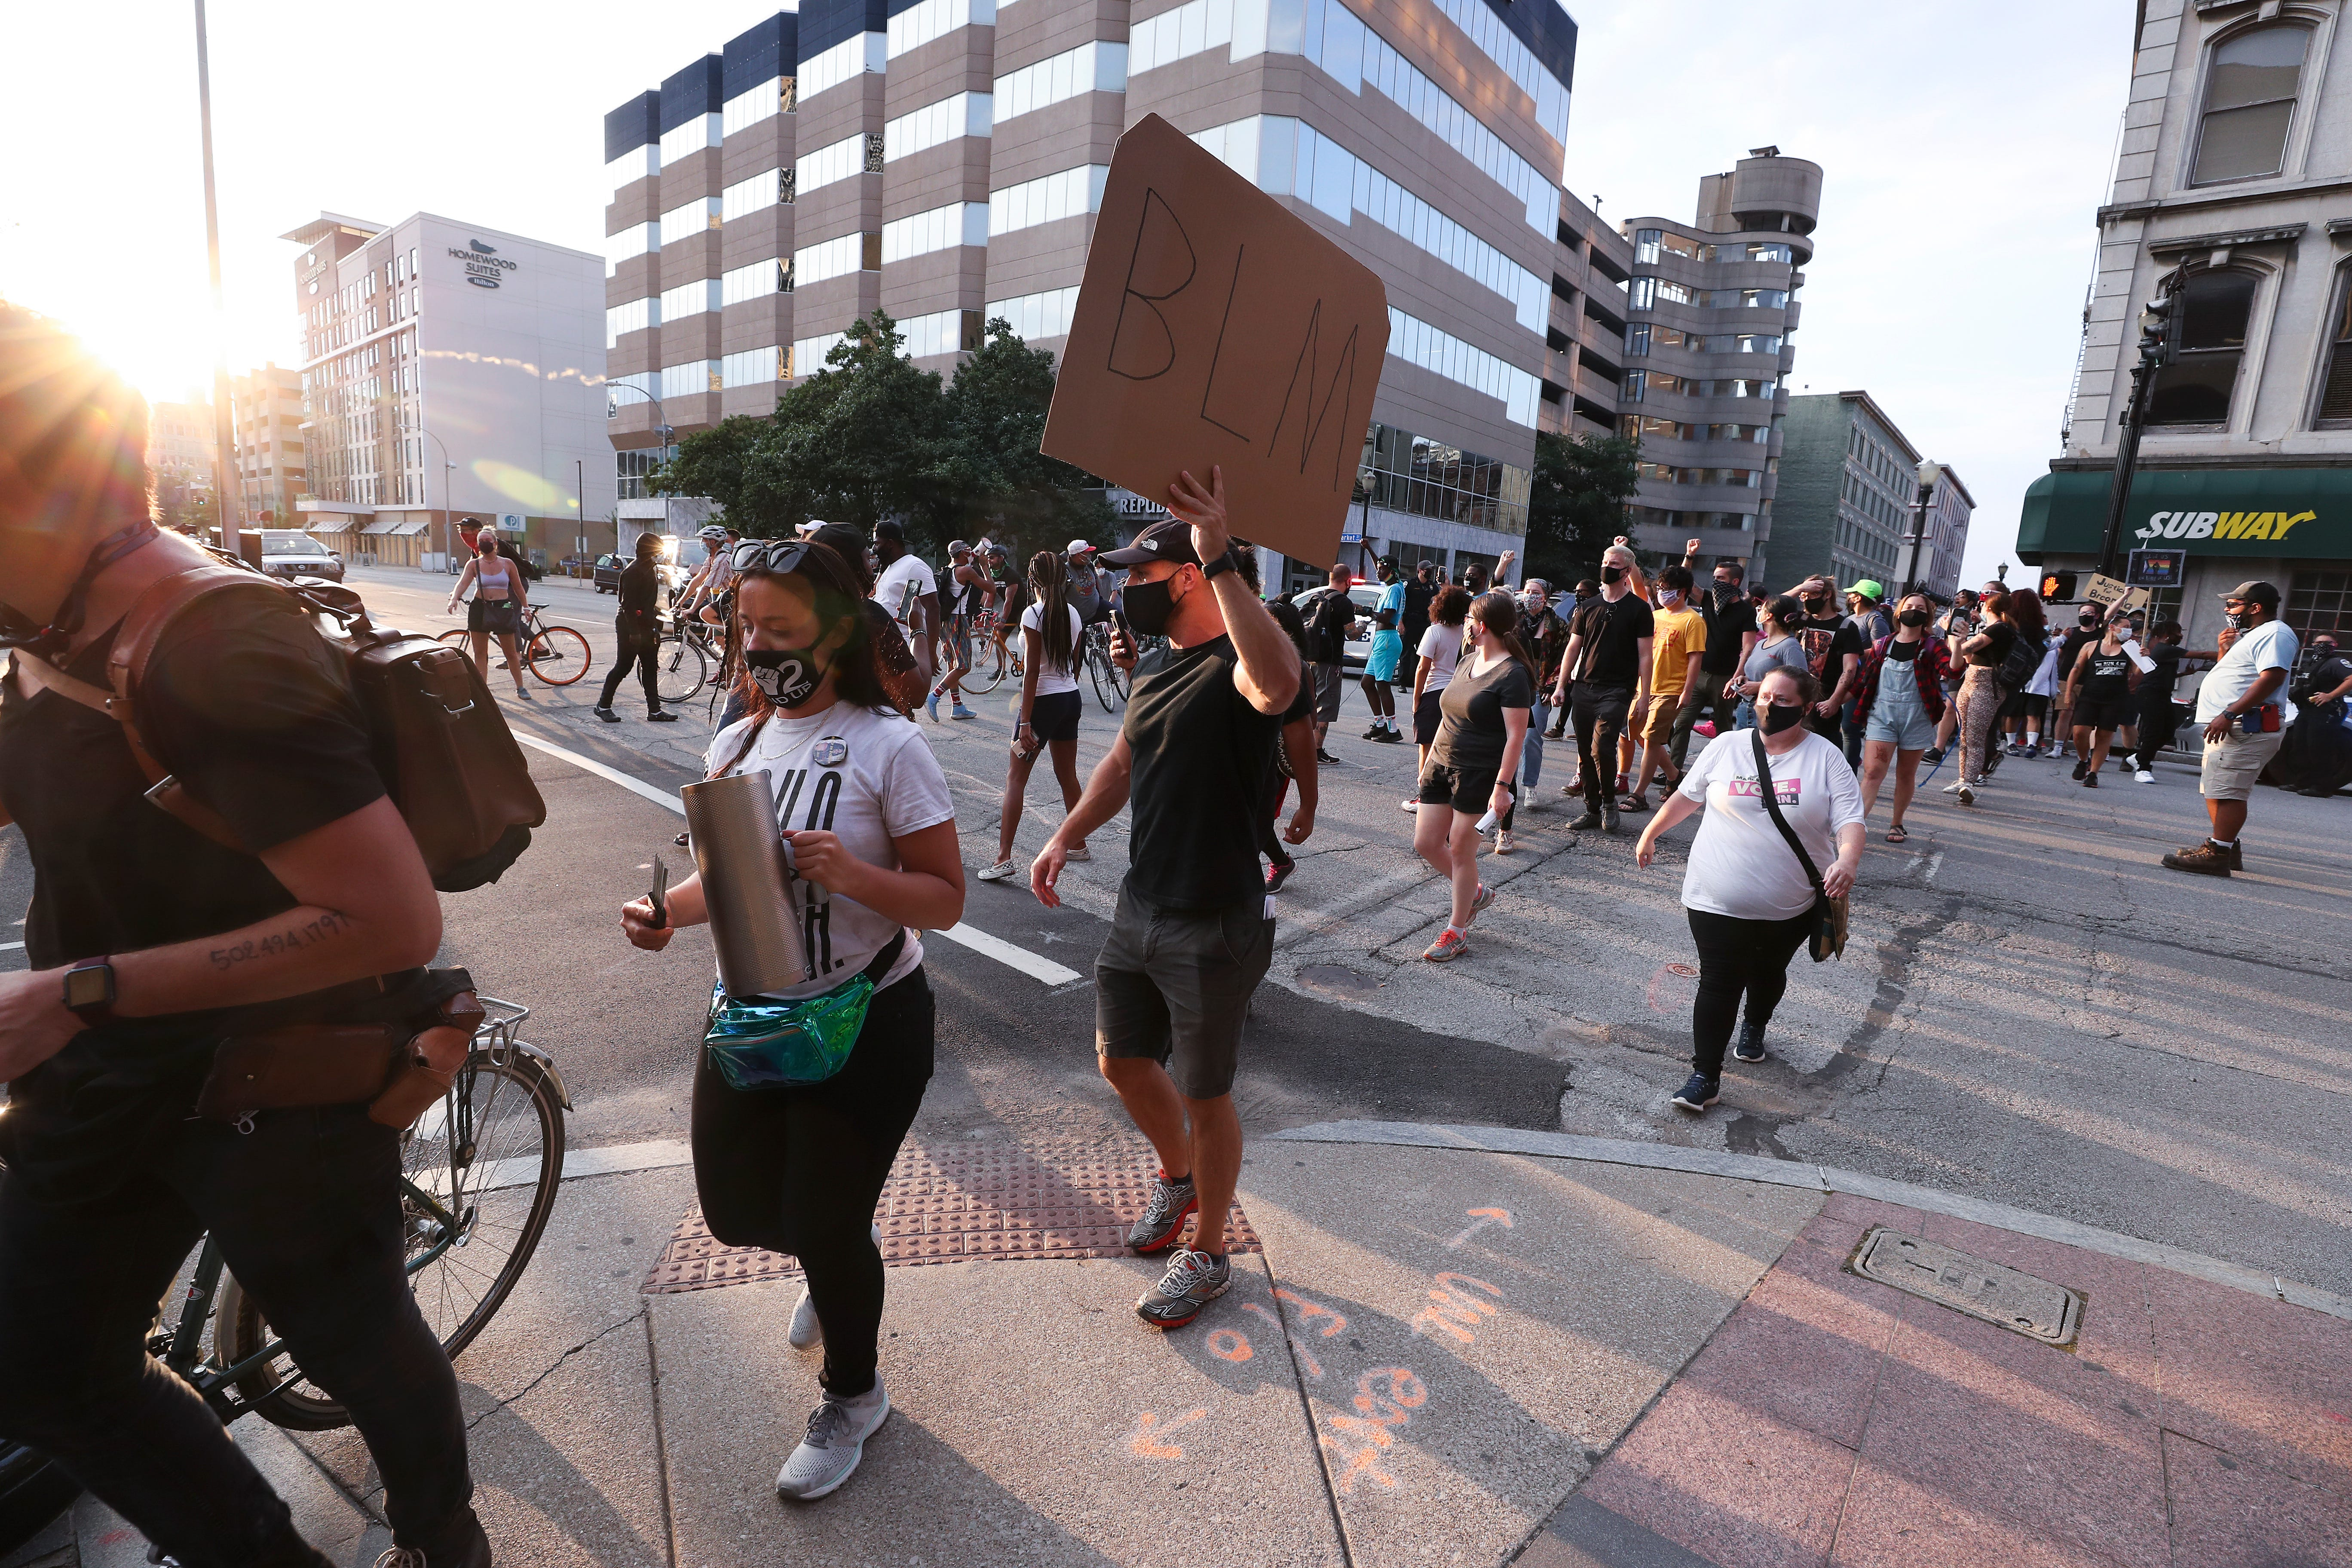 Protesters crossed the intersection of 6th and Market as they marched from the Ali Center to Jefferson Square Park in downtown Louisville on Aug. 9, 2020.  They avoided an encounter with police earlier.